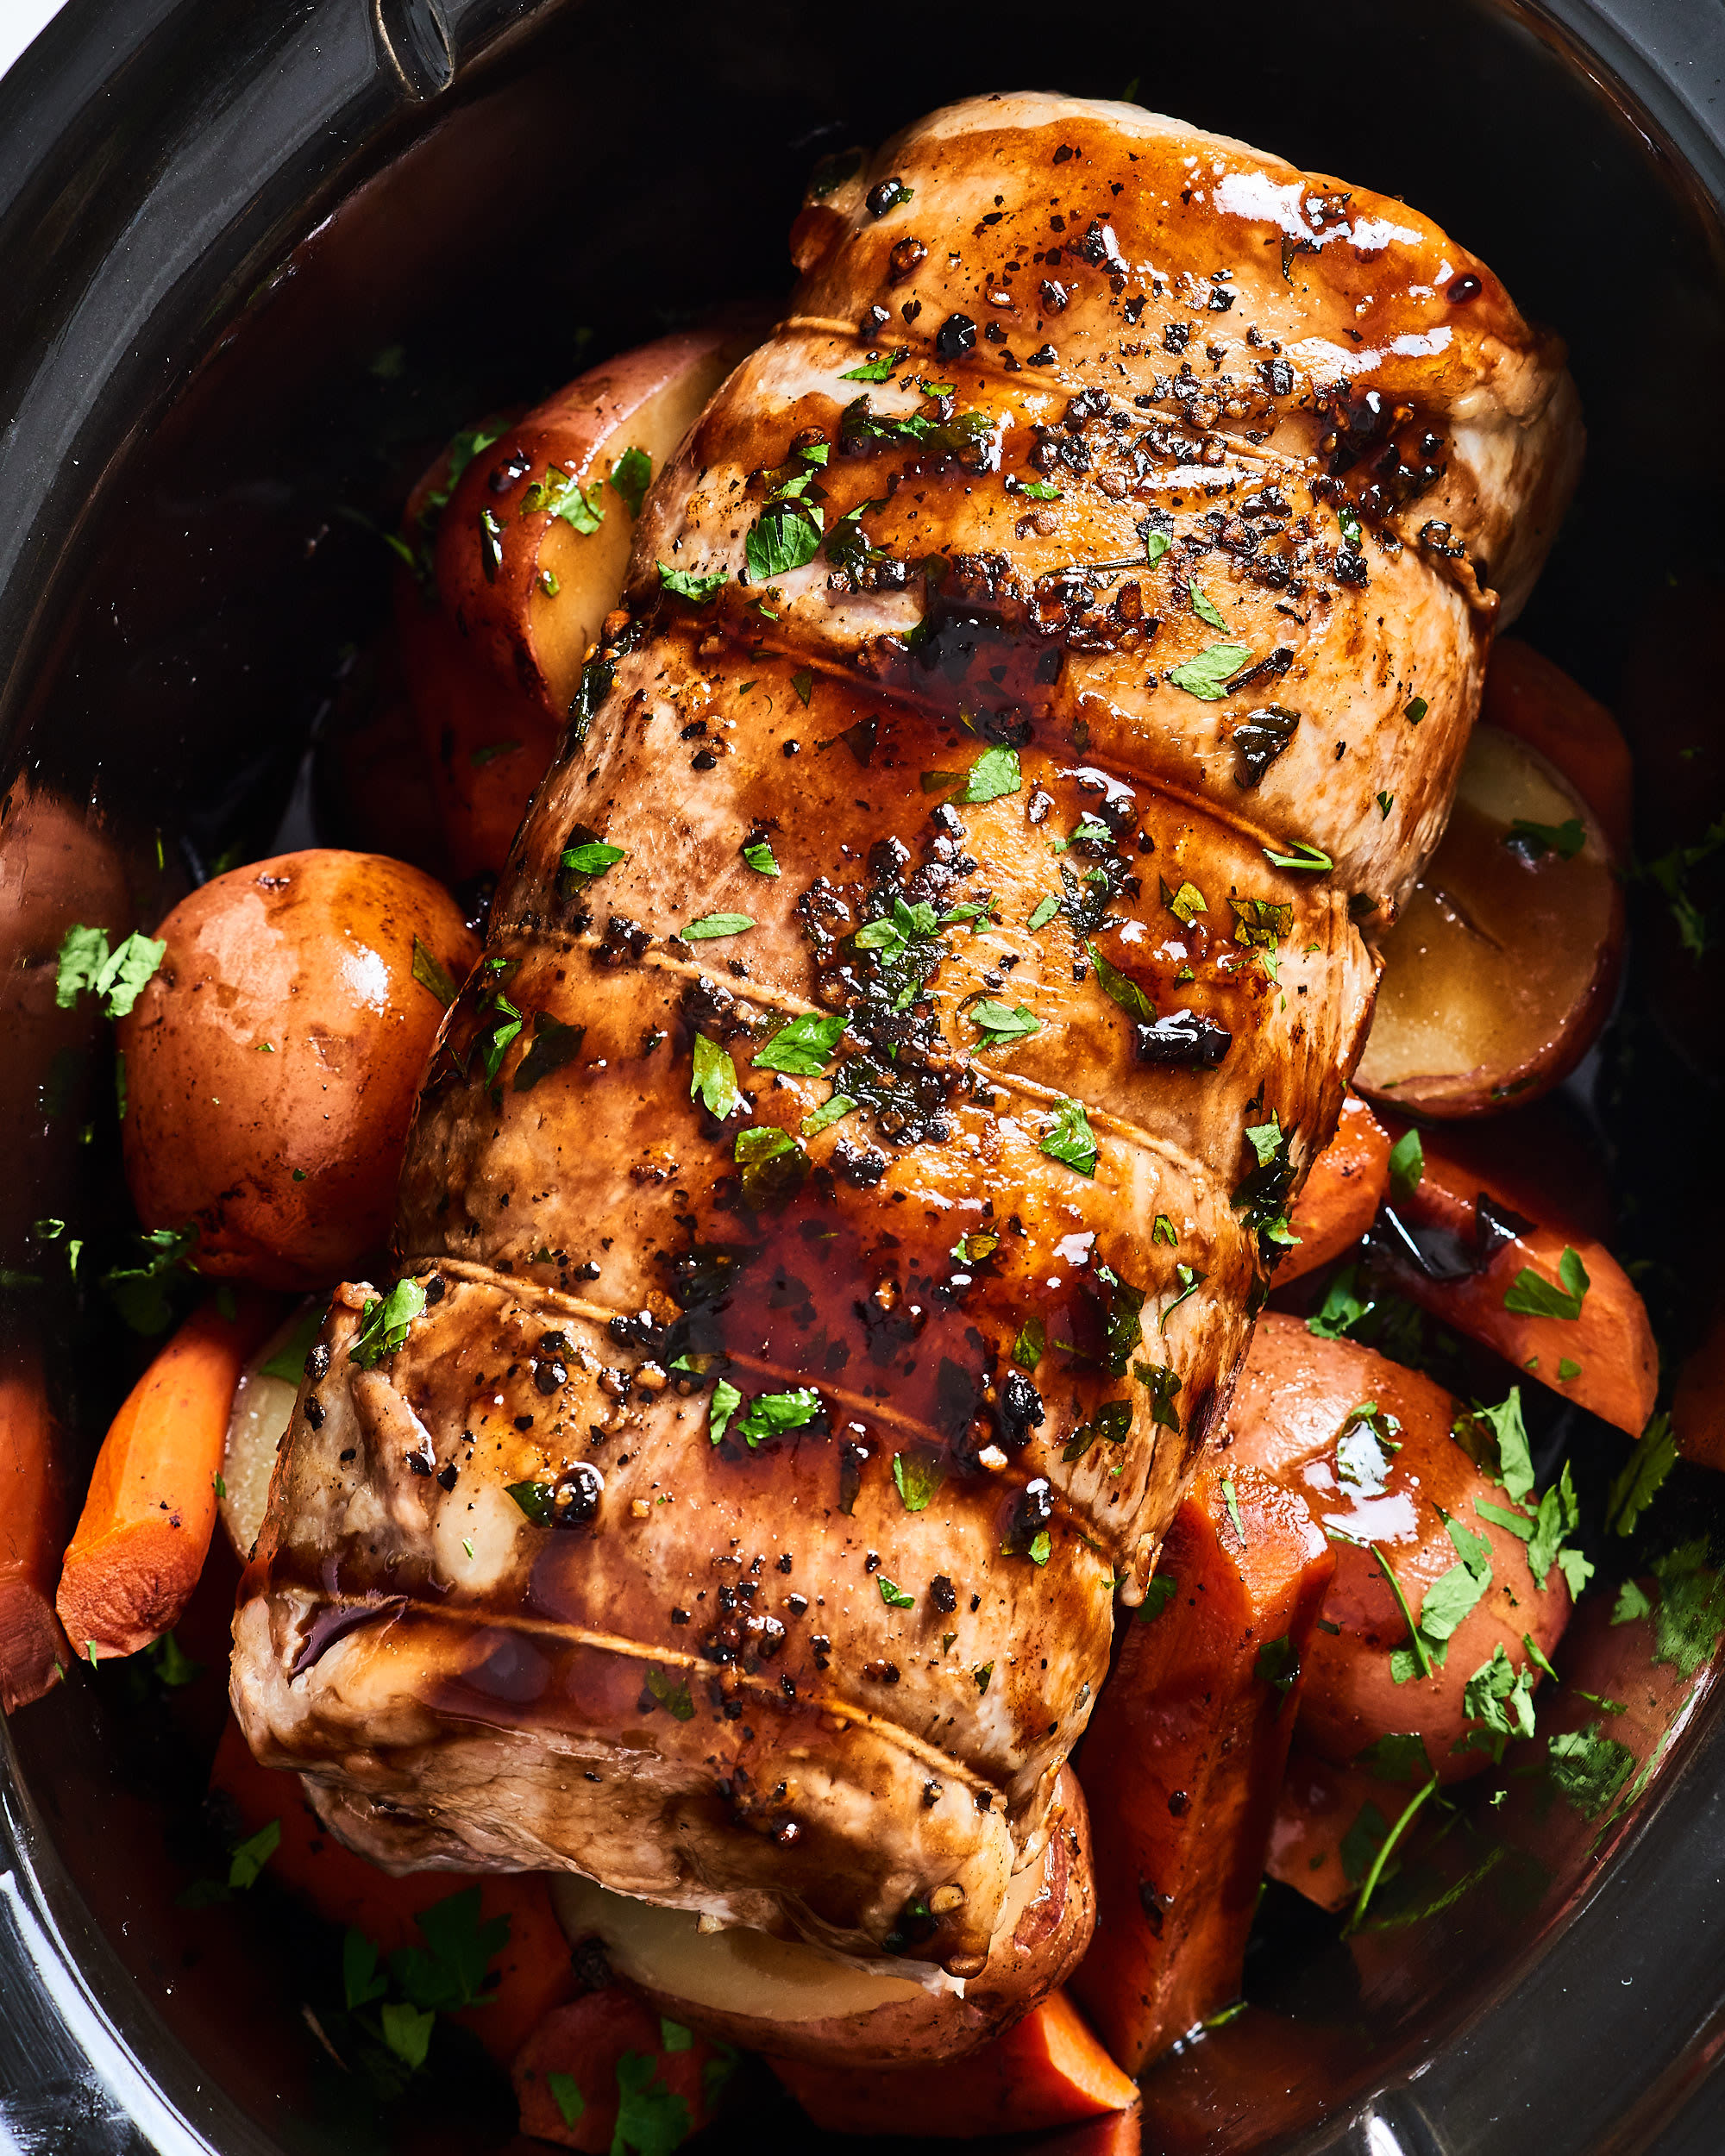 This Slow Cooker Honey-Balsamic Pork Loin Couldn't Be Easier